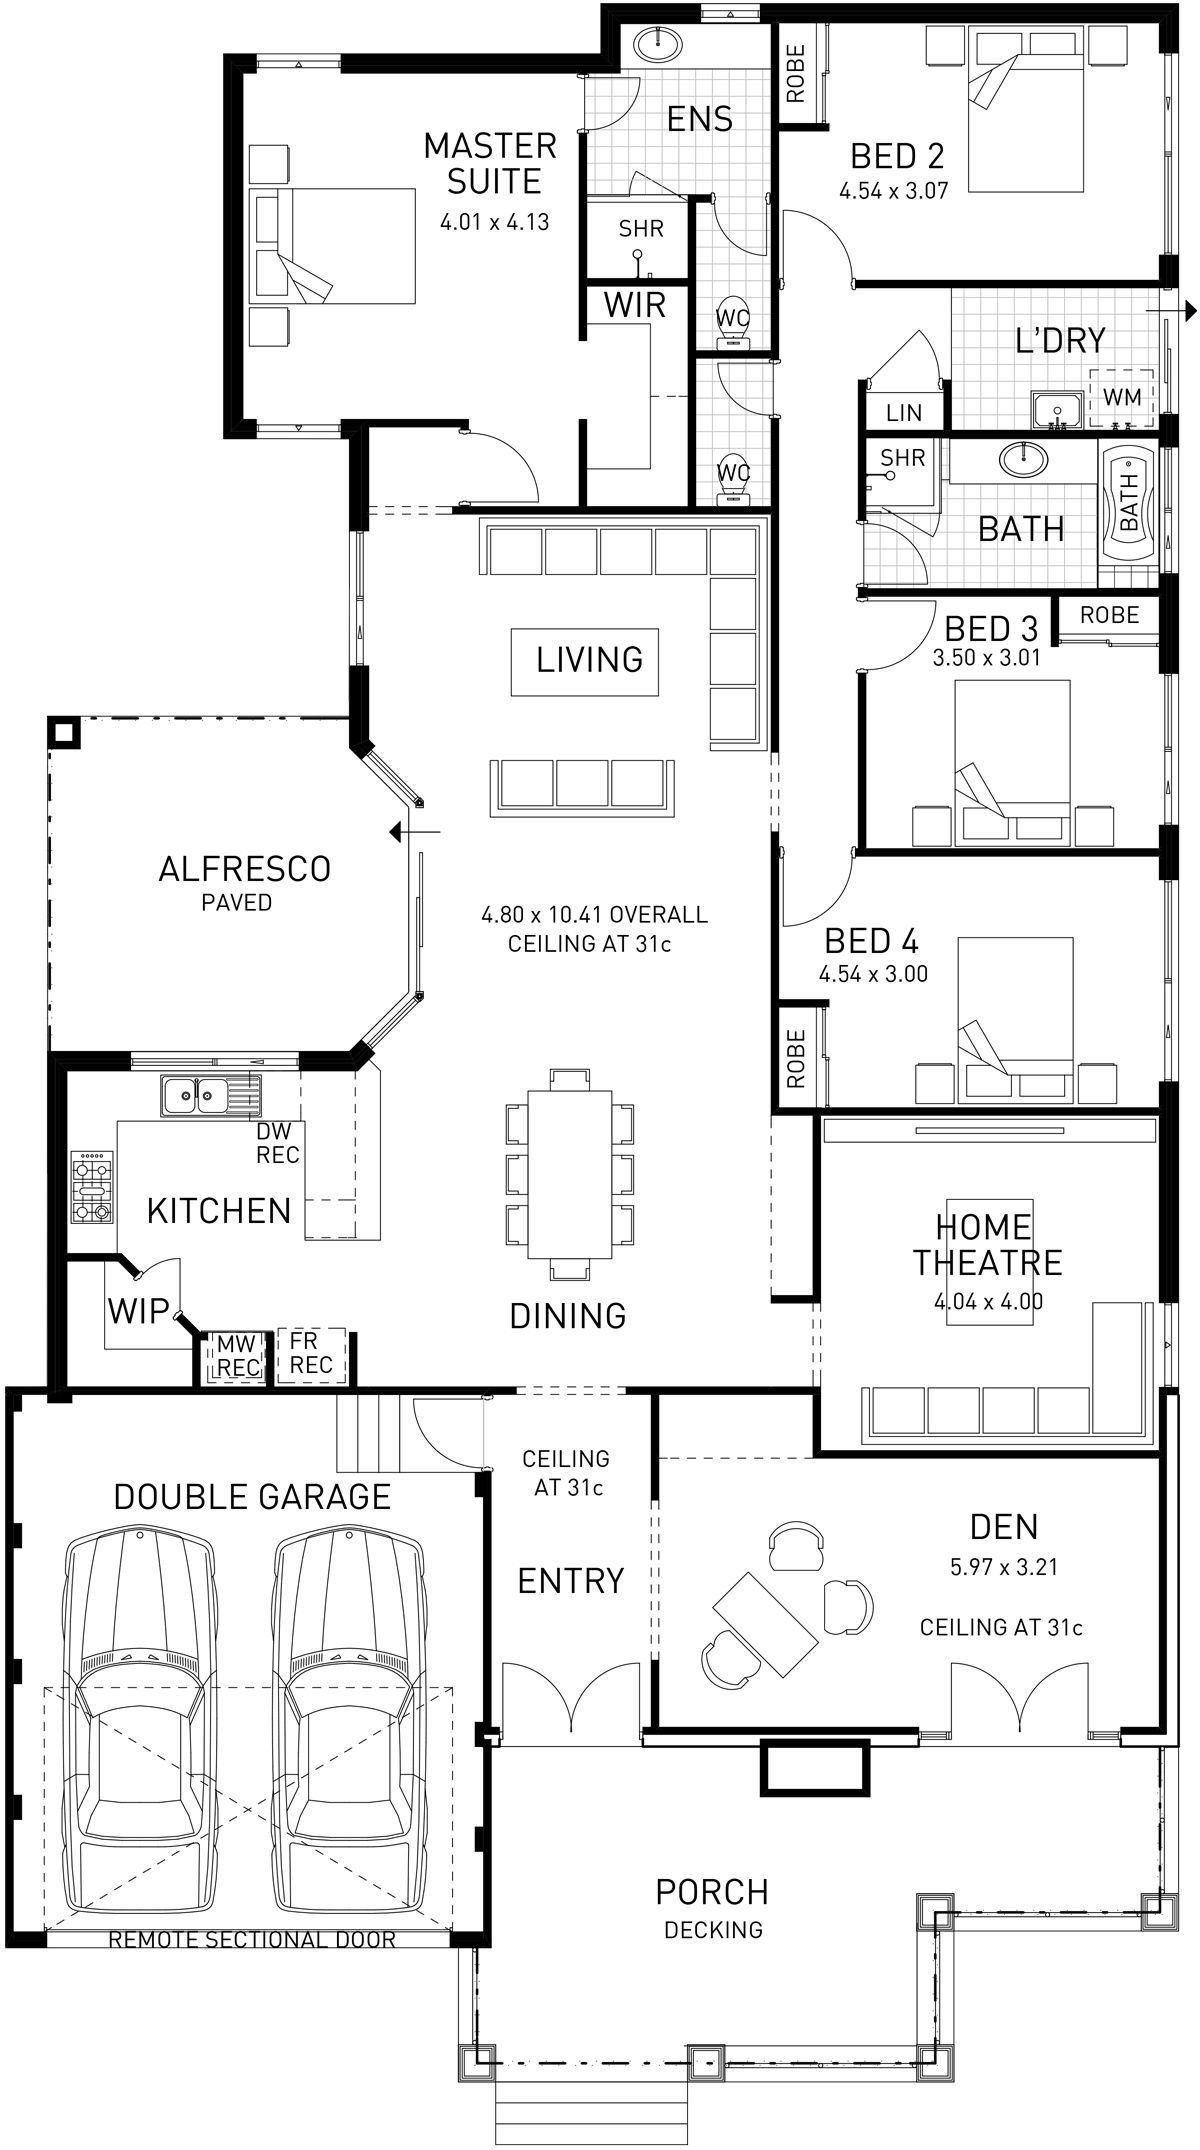 Island, Hampton Single Storey Floor Plan, WA | Plan de maison ...